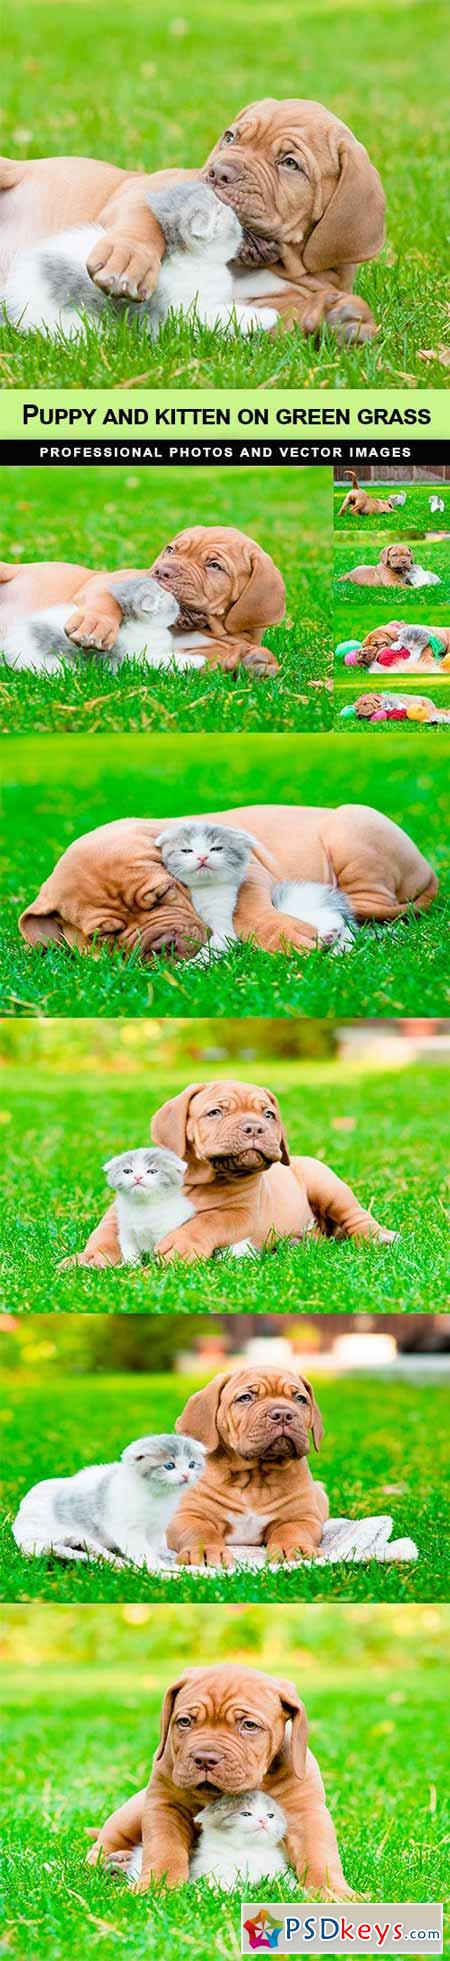 Puppy and kitten on green grass - 9 UHQ JPEG